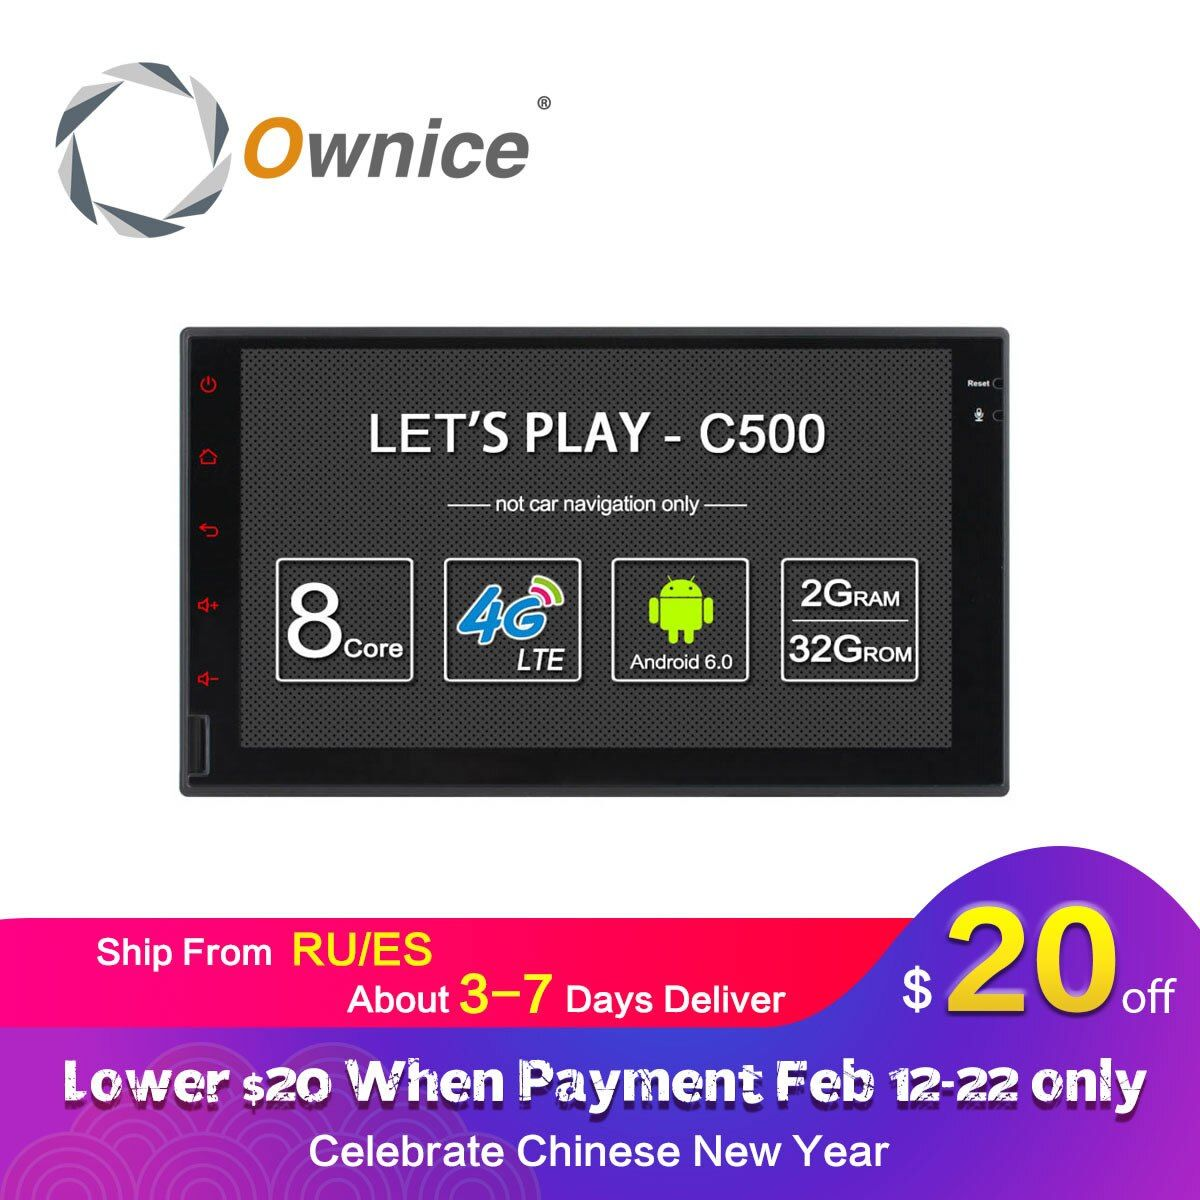 Ownice C500 Octa 8 Core <font><b>Android</b></font> 6.0 2G RAM 32GB ROM Support 4G LTE SIM Network Car GPS 2 din Universal car Radio player no dvd